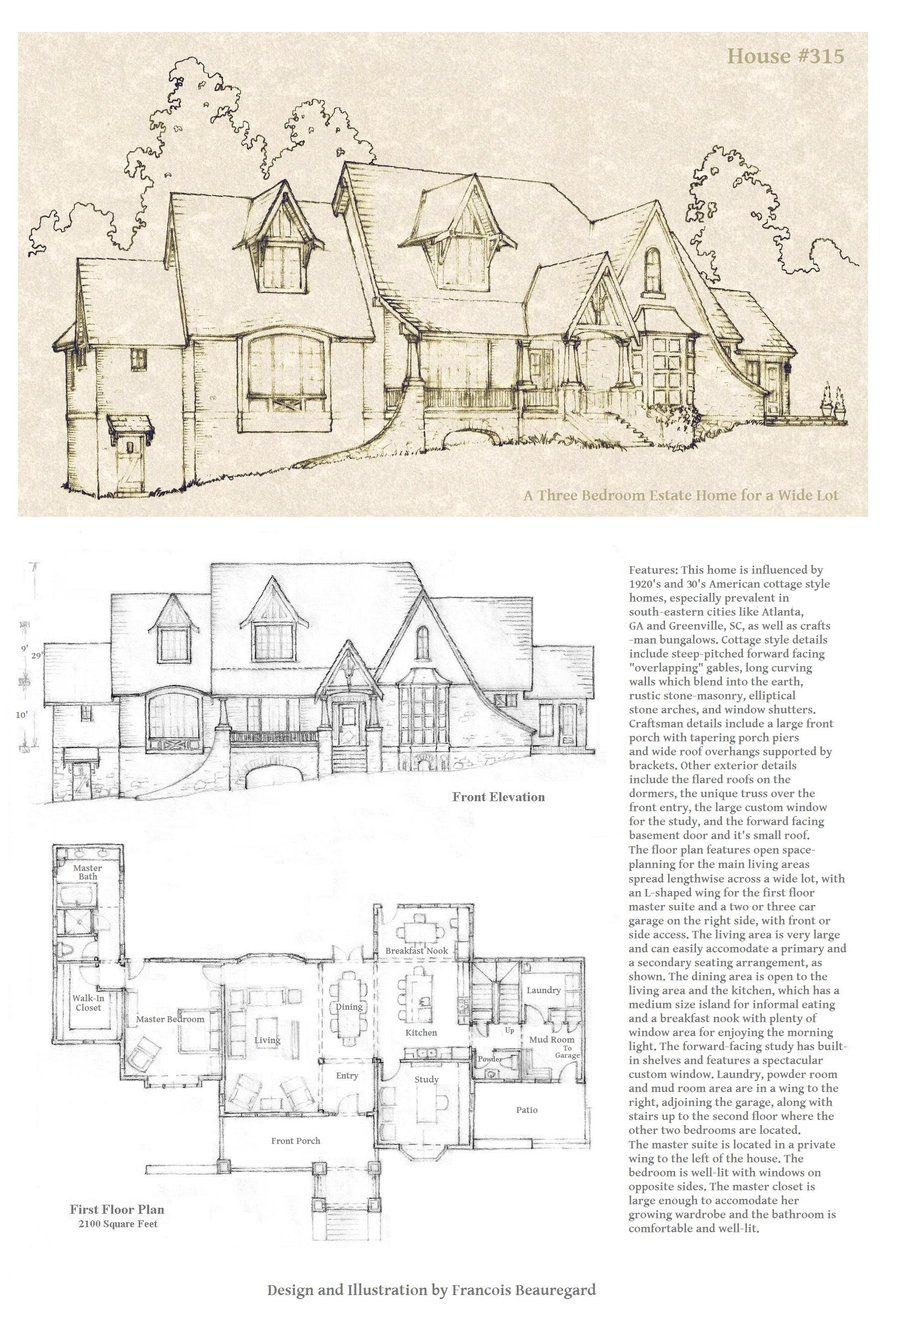 Updated Version Of House 337 All Pencil Done By Hand Look In Gallery For Full Plans For This House Includ Vintage House Plans Cottage House Plans How To Plan